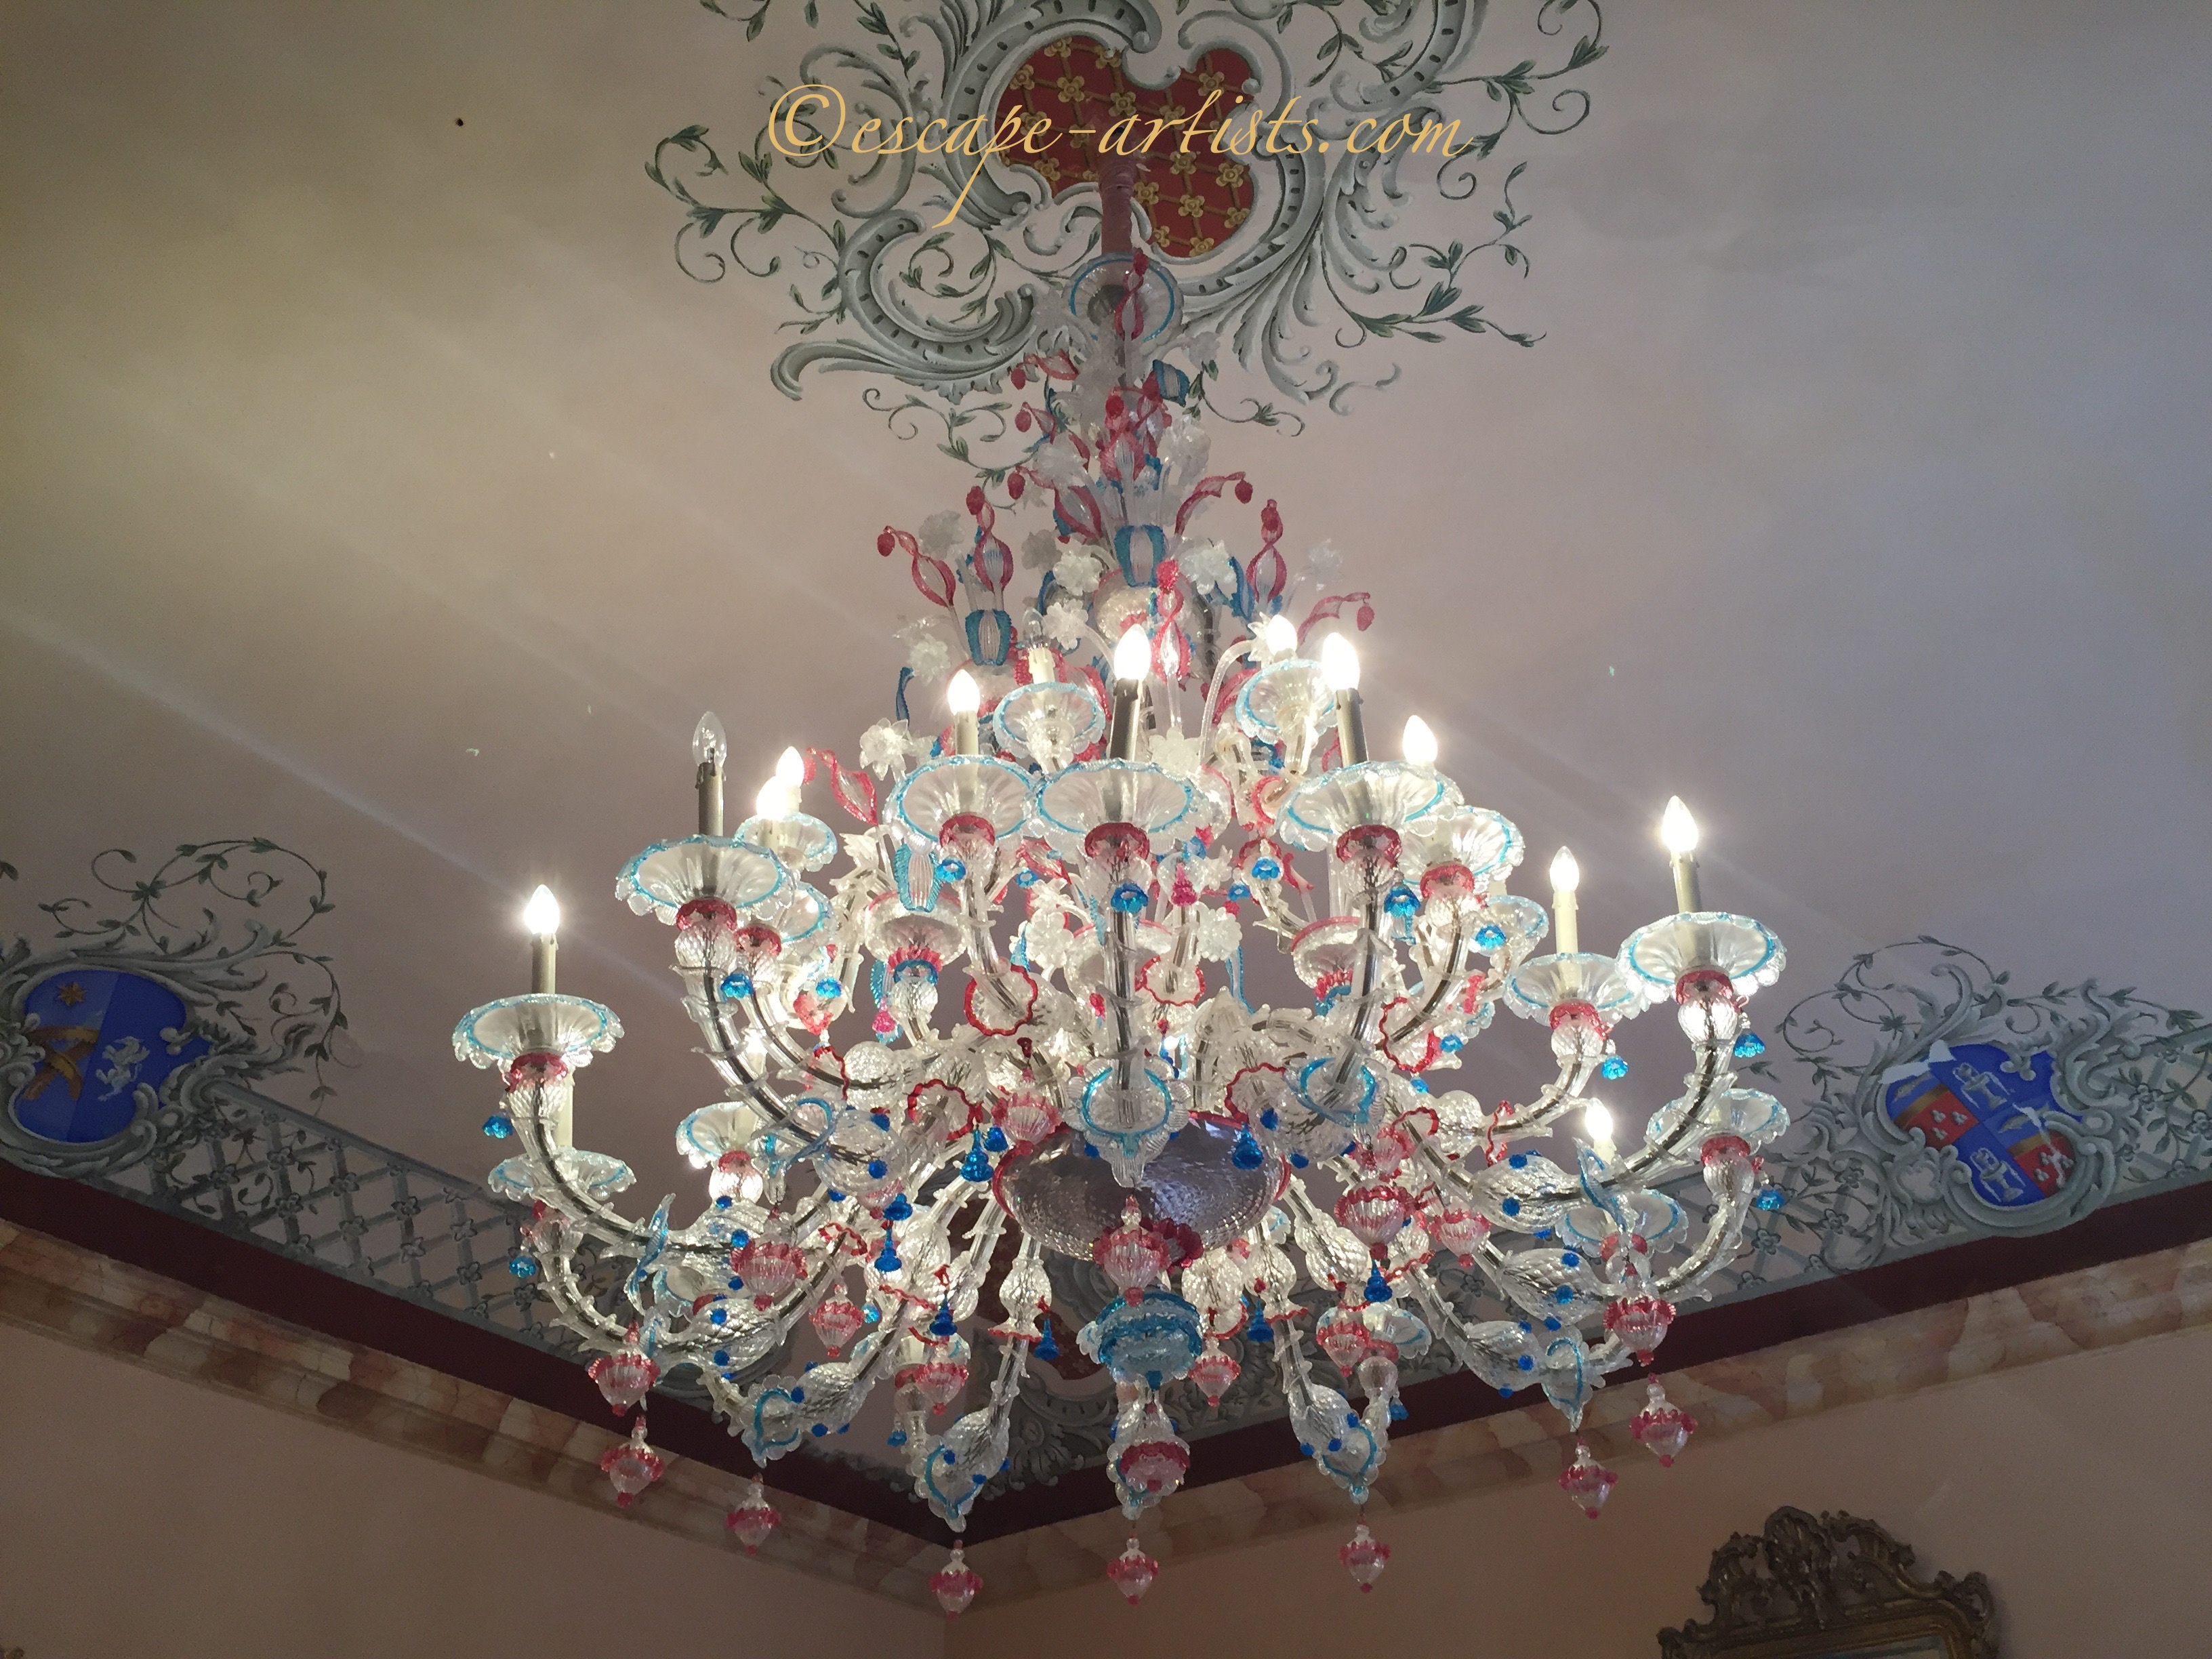 art chandelier additional painting view saatchi missagia claudio image by